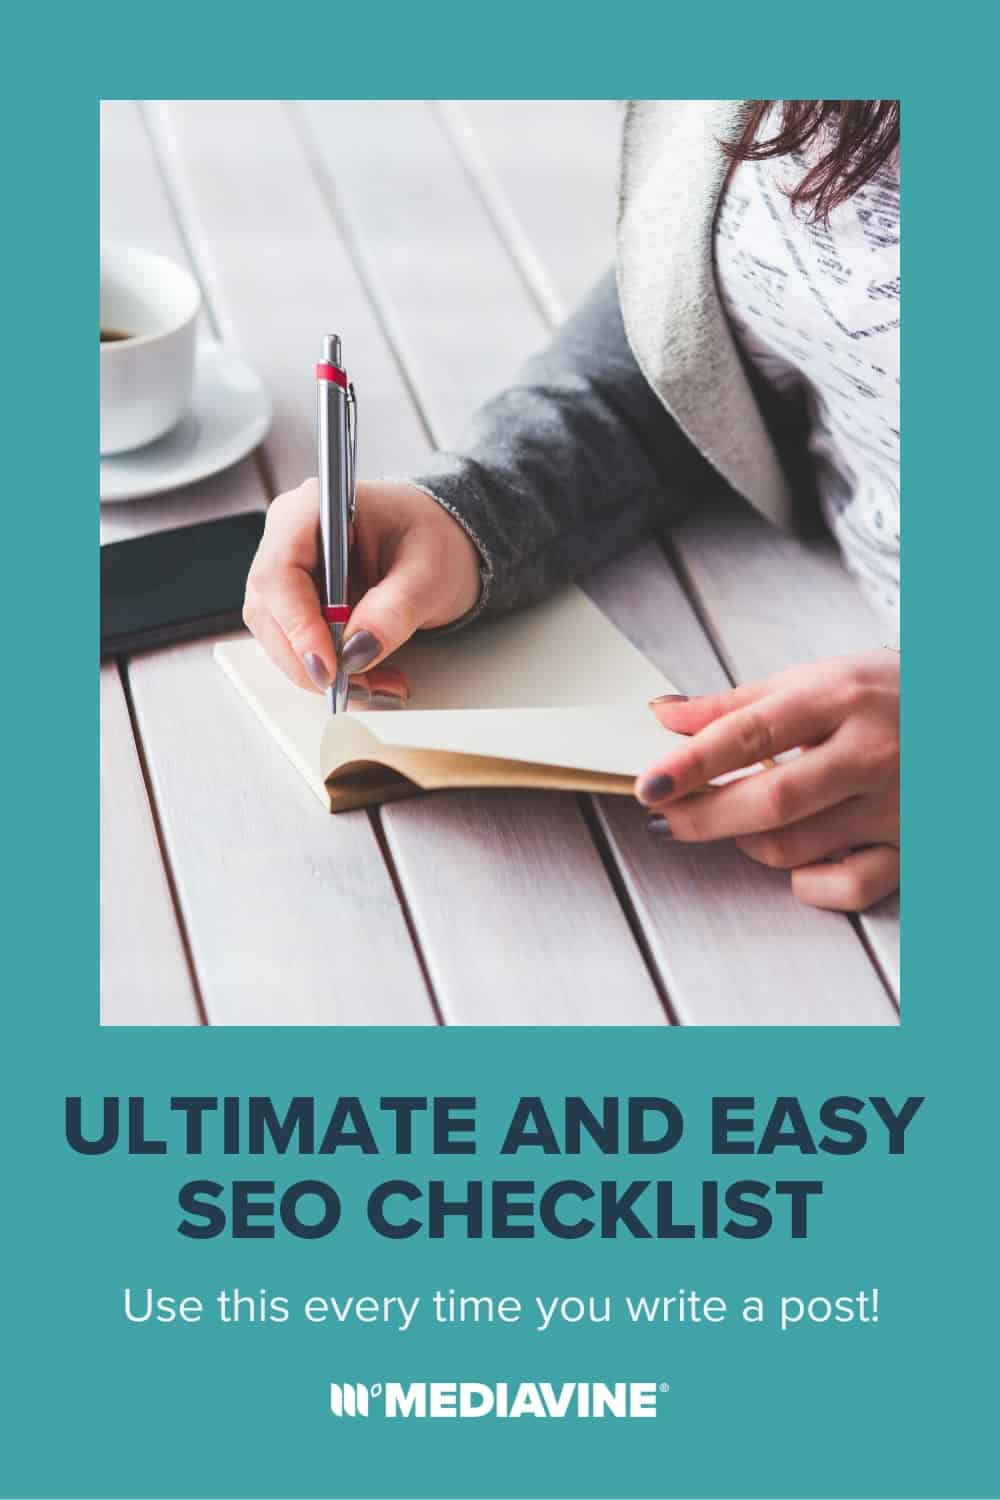 Mediavine Pinterest image - Ultimate and easy SEO Checklist: Use this every time you write a post!